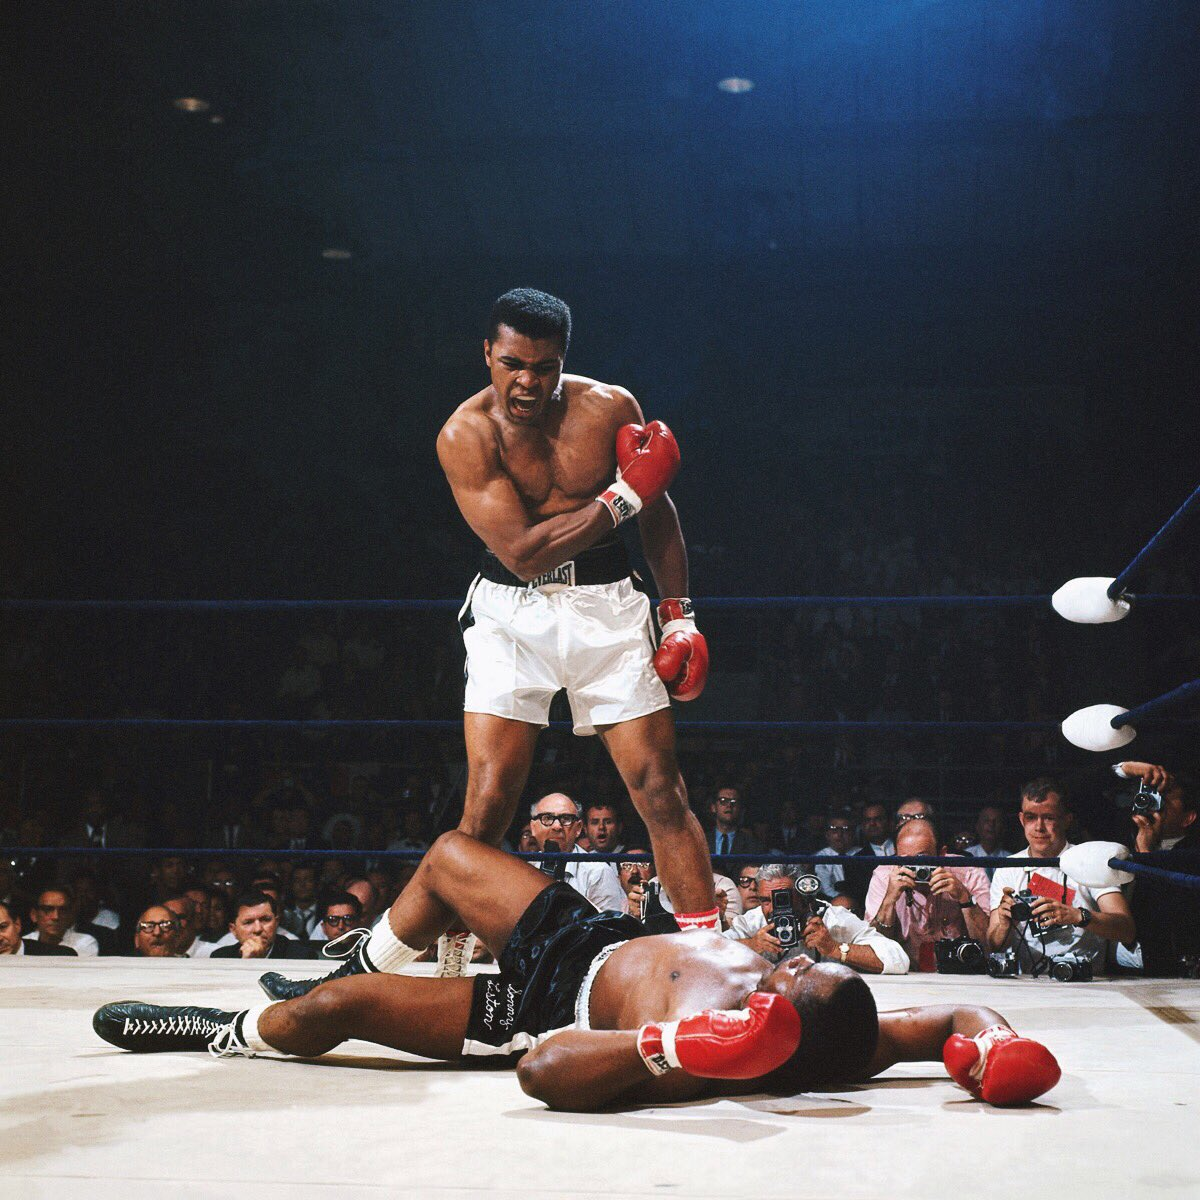 the greatest of all time. RIP. https://t.co/WXp6rx6CYQ